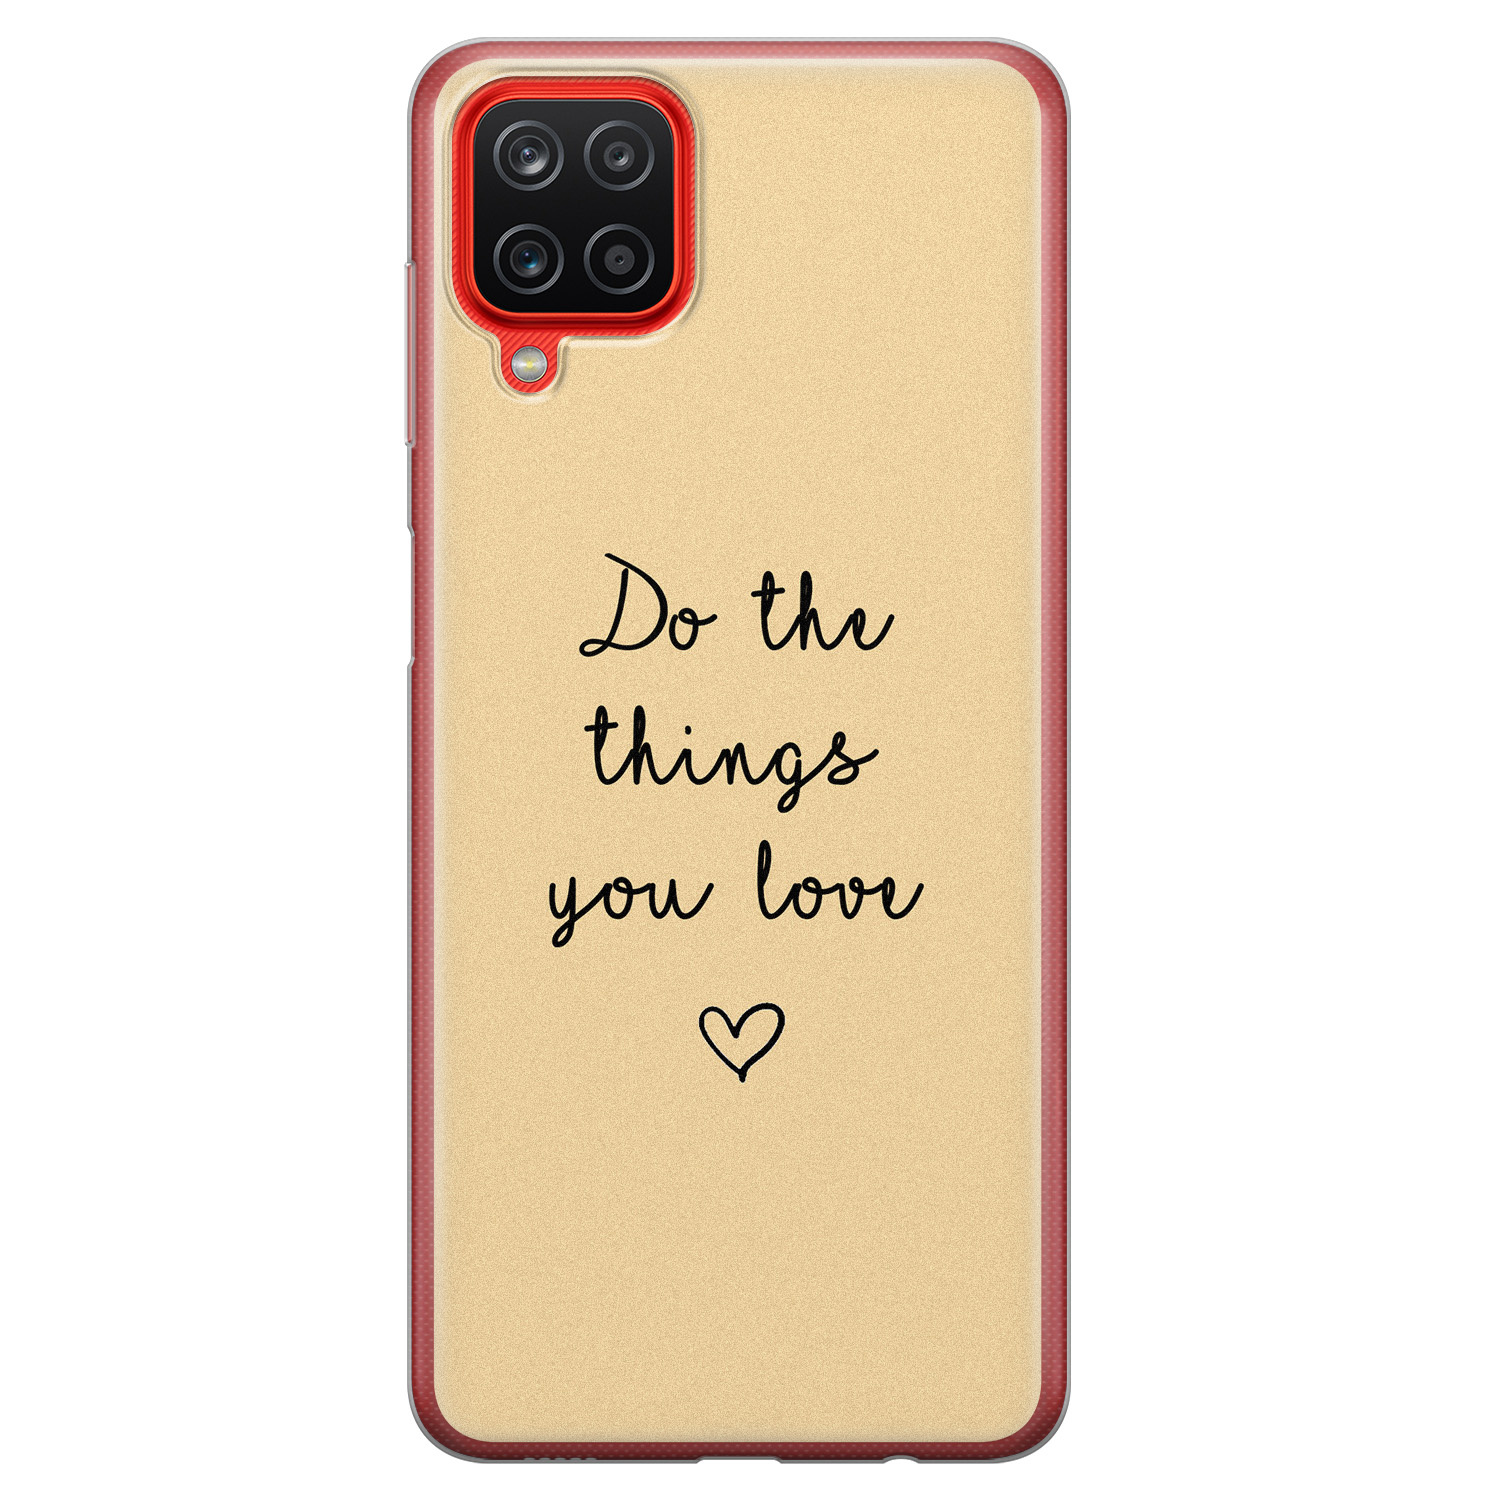 Samsung Galaxy A12 siliconen hoesje - Do the things you love